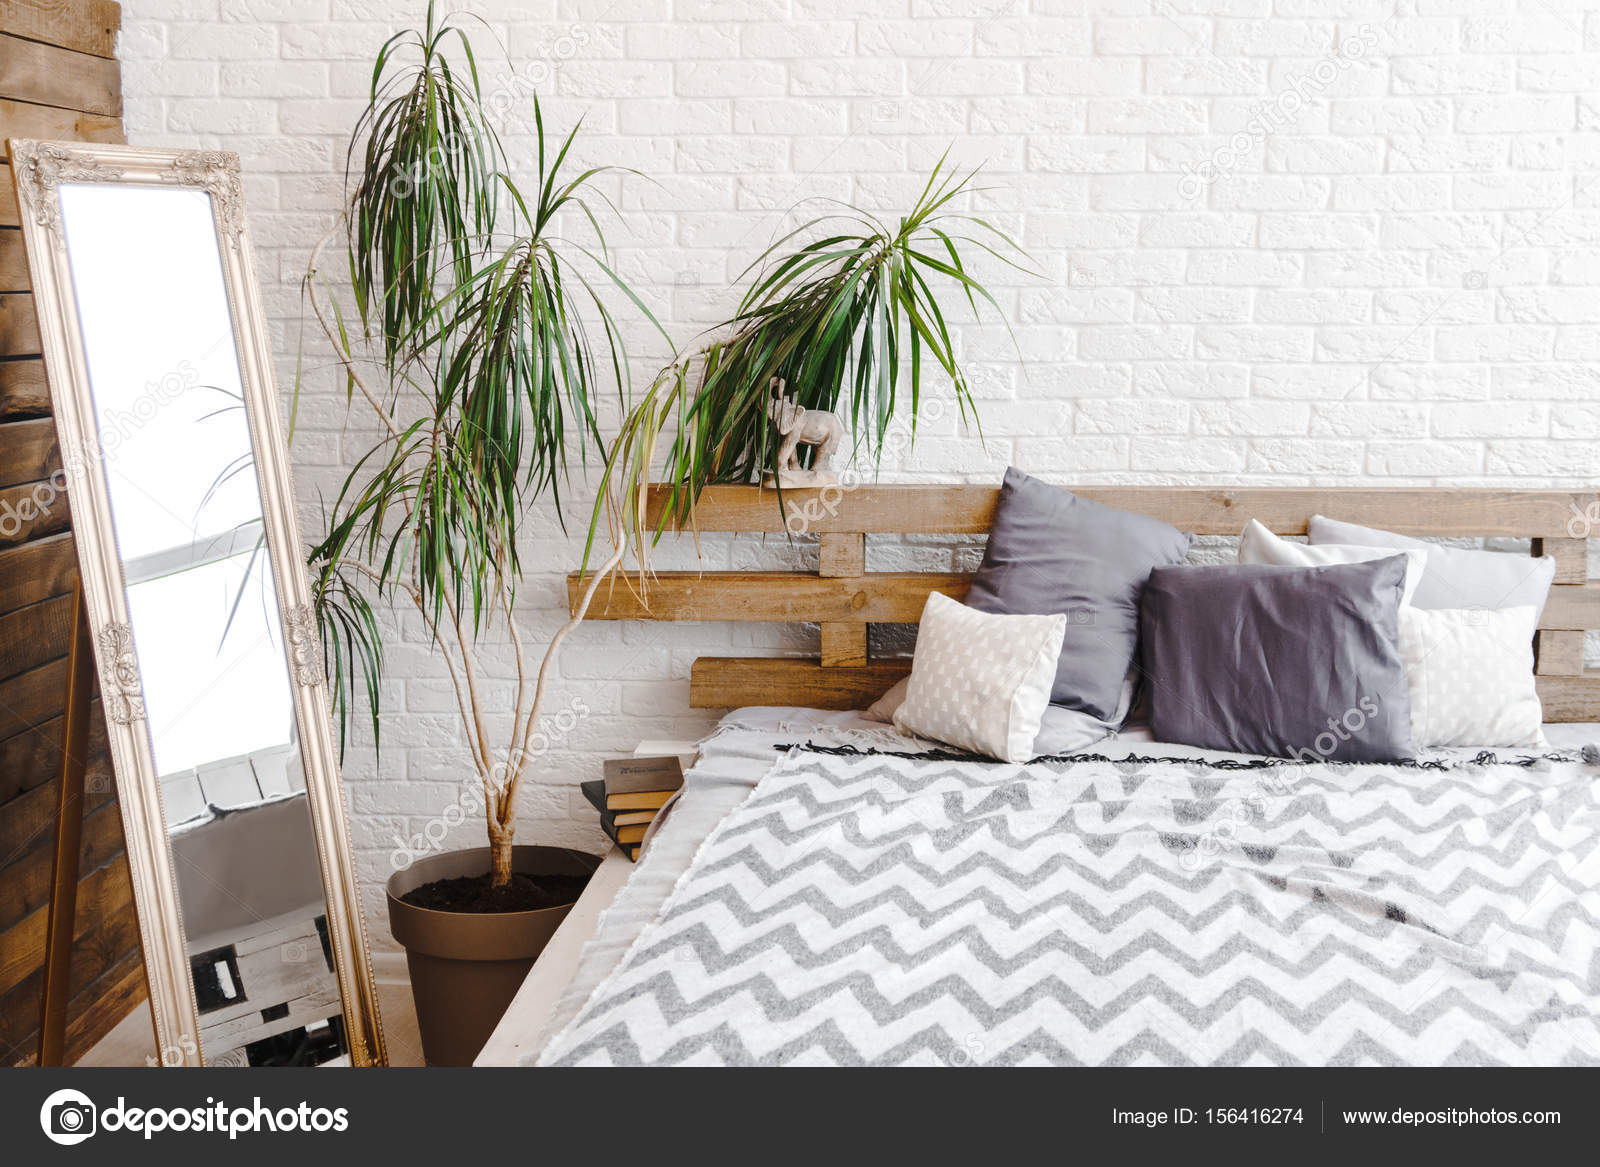 Houten Paletten Bed : Moderne studio decor ontwerp met pallets bed plant in vaas en